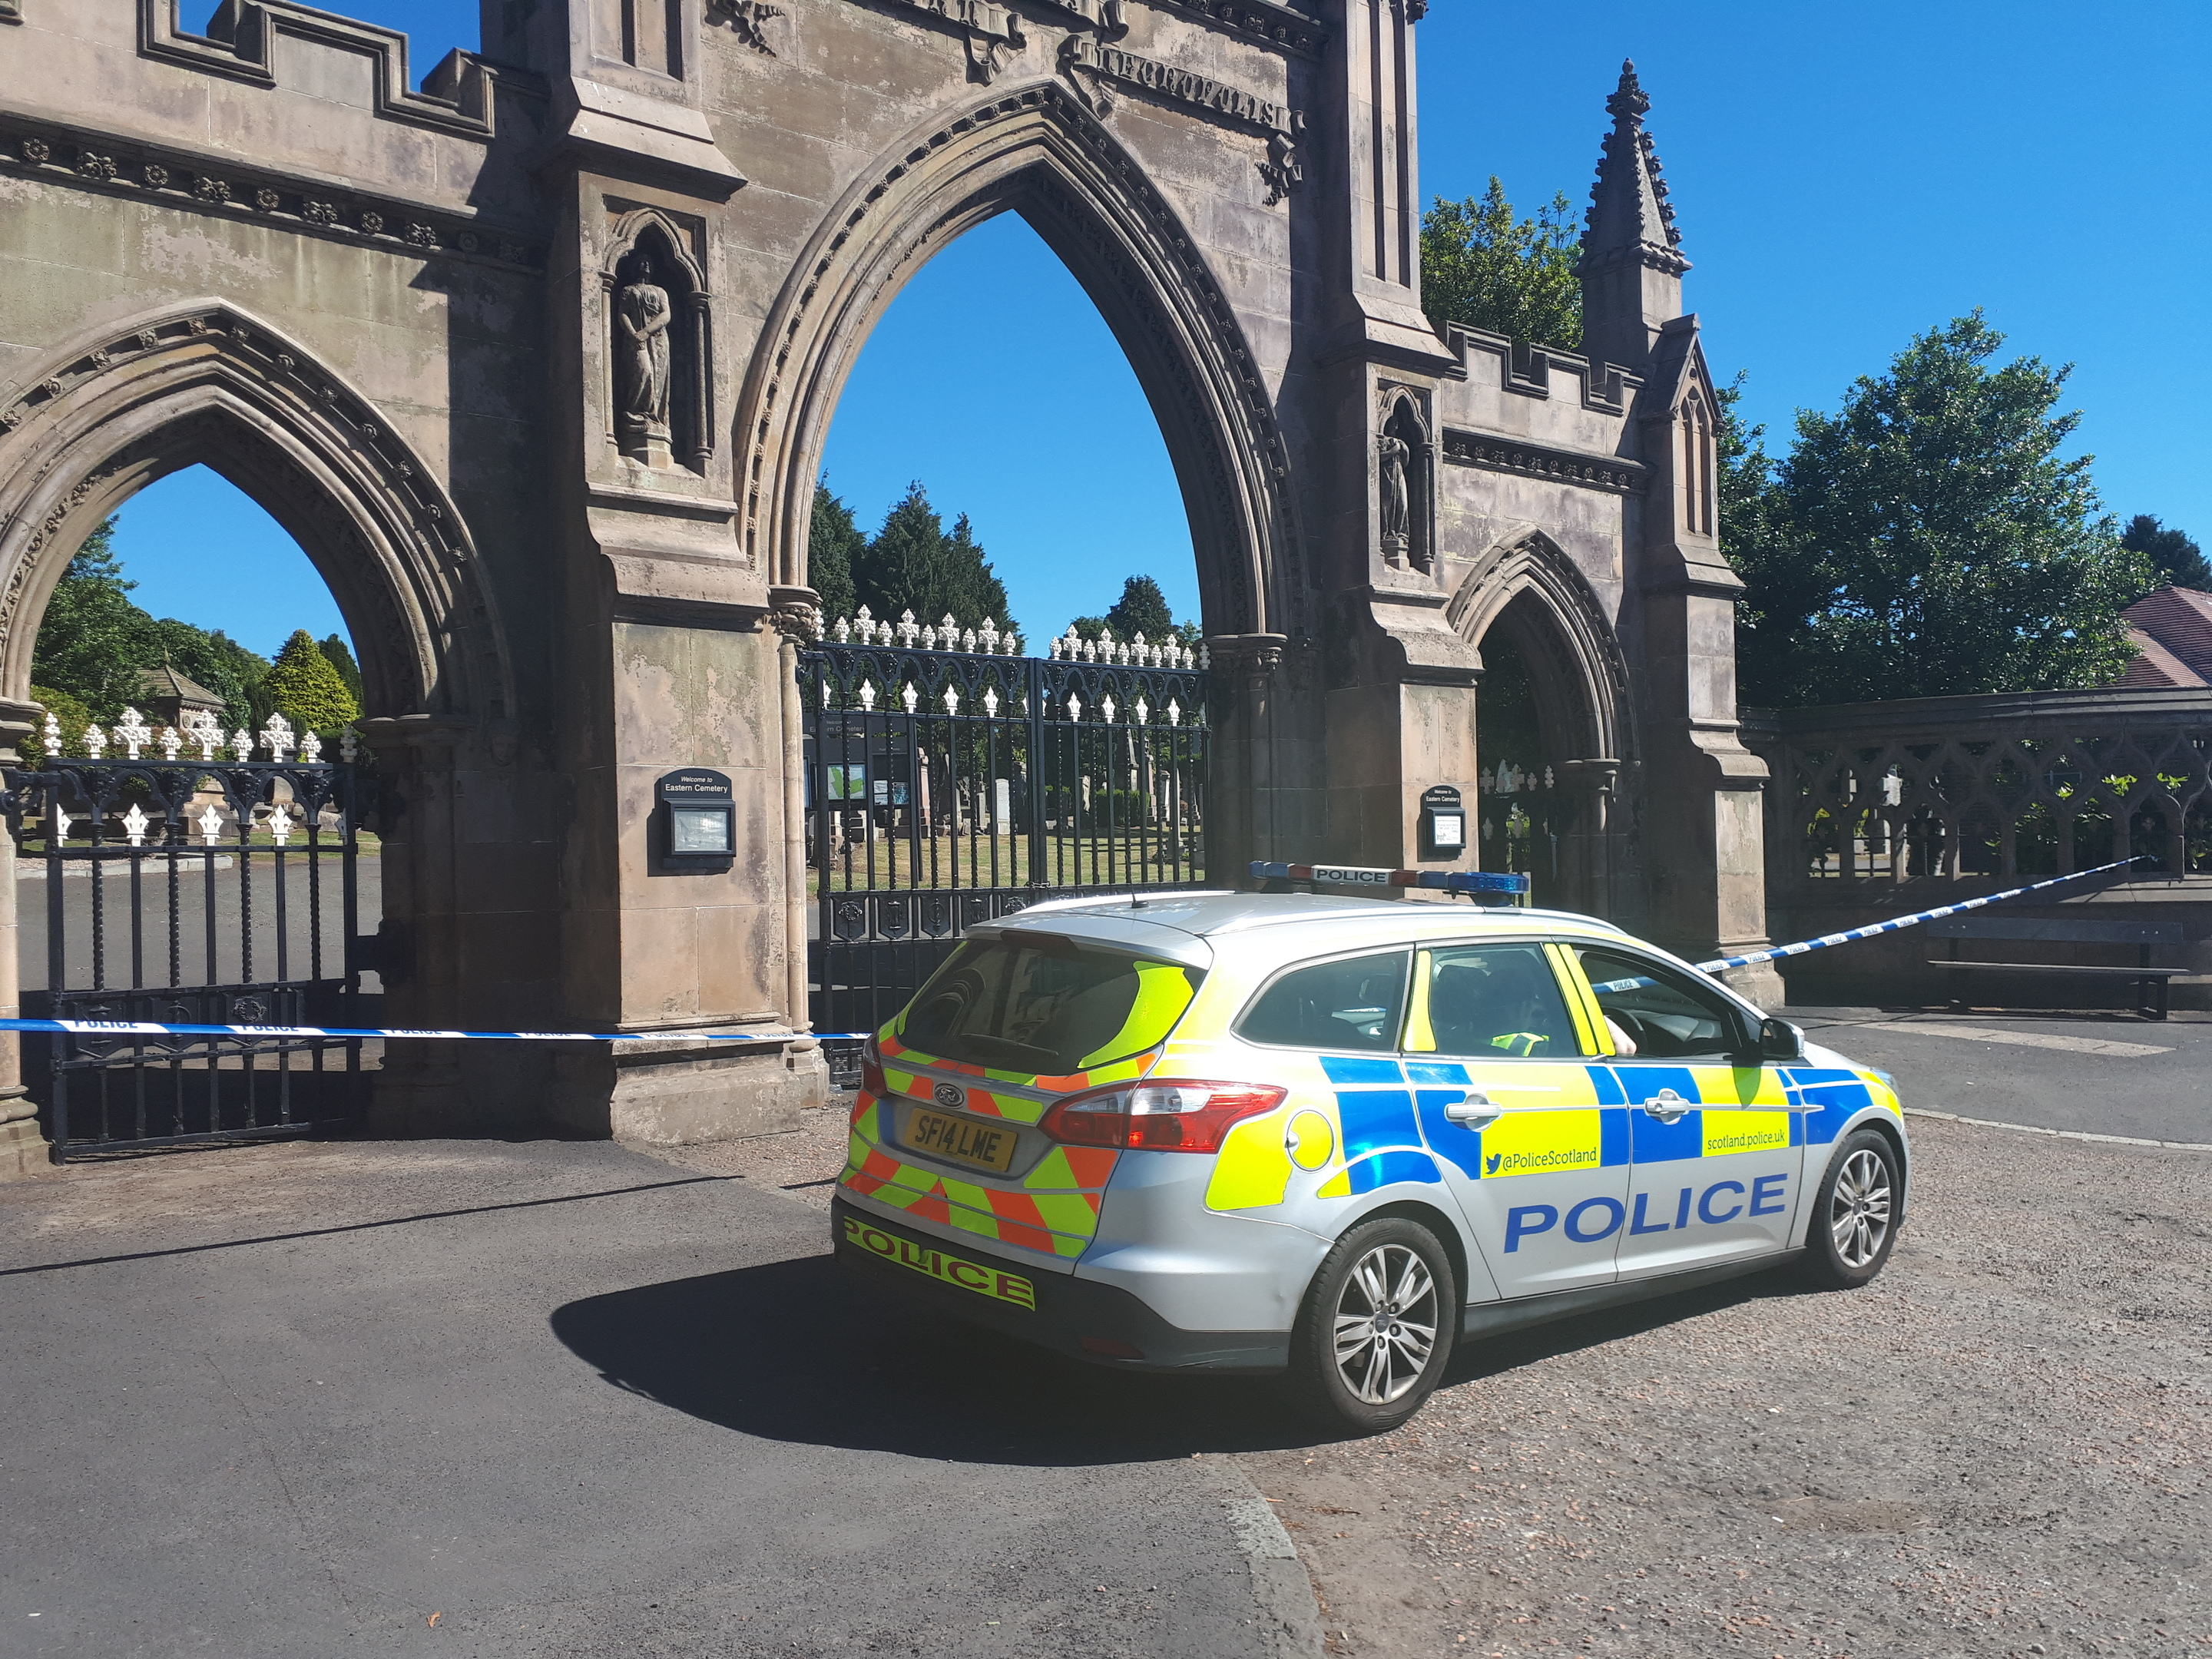 The cemetery was cordoned off on Saturday morning